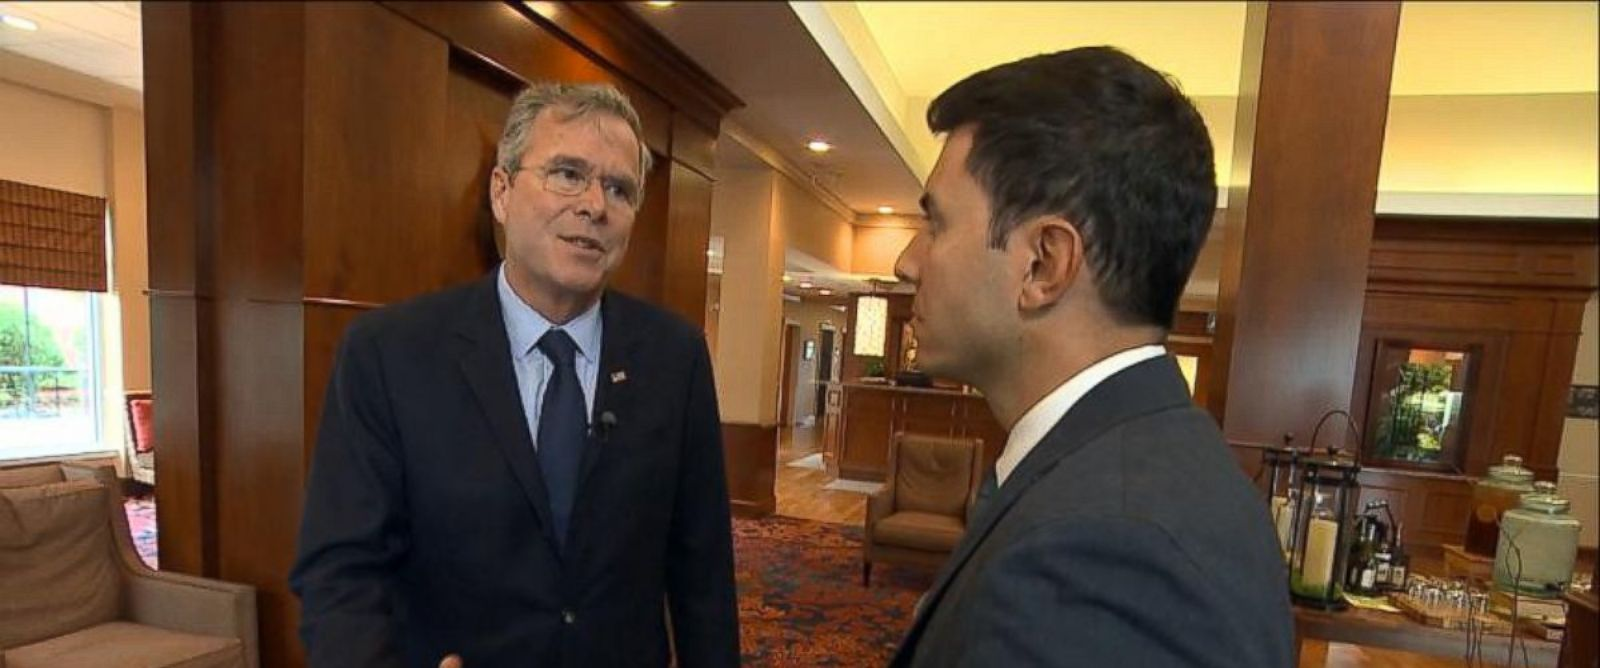 PHOTO: GOP candidate Jeb Bush talks to ABC News Tom Llamas while hes campaigning in New Hampshire, Sept. 30, 2015.